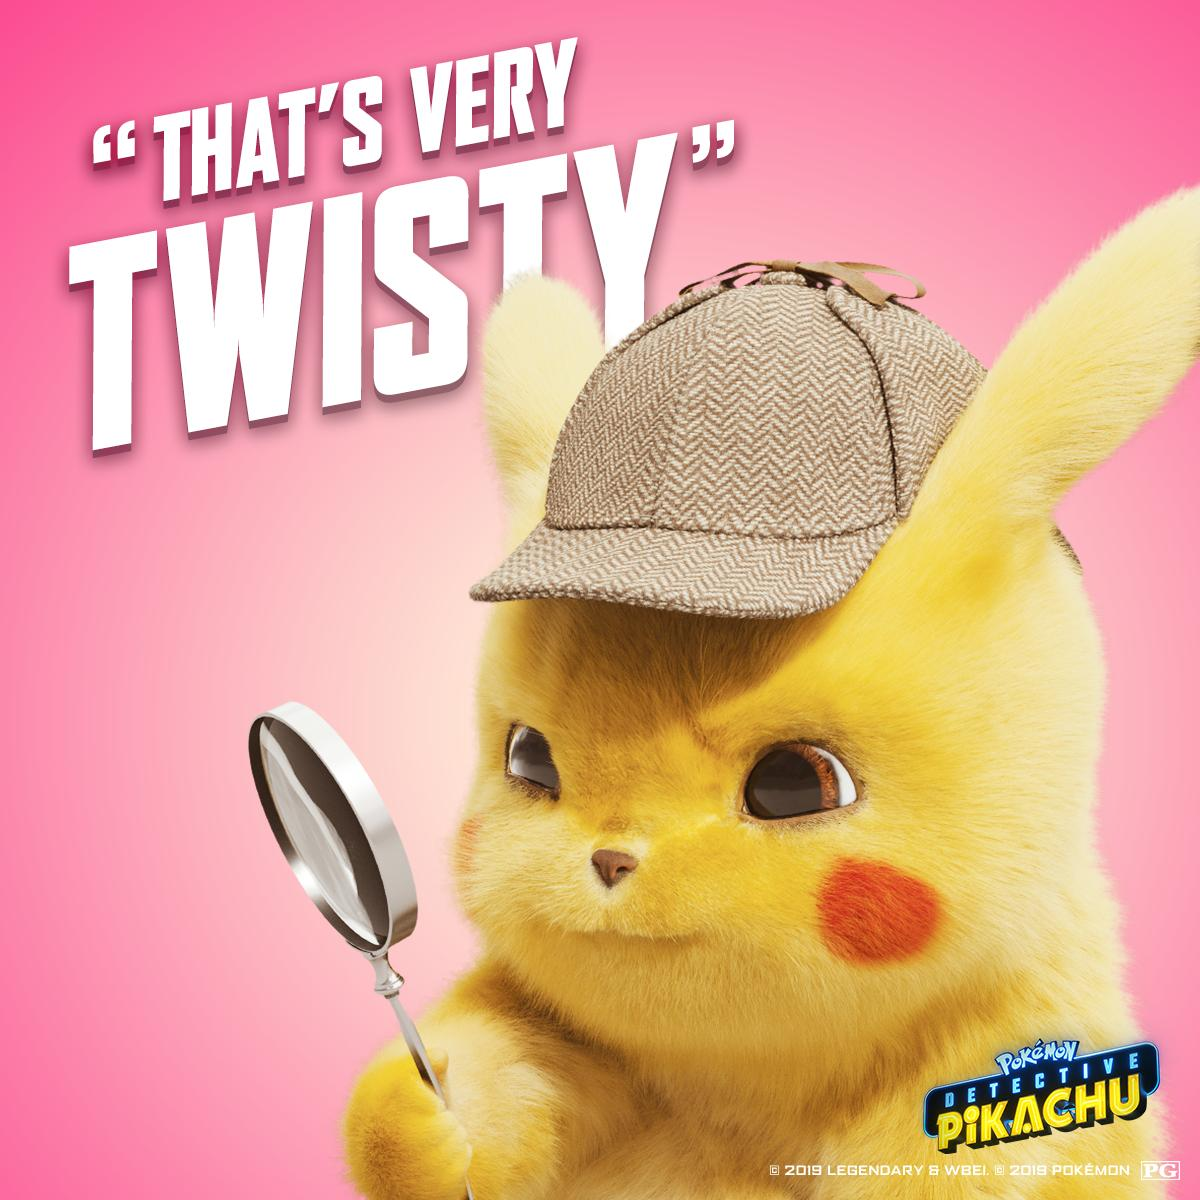 What's your favorite #DetectivePikachu quote? 🔎